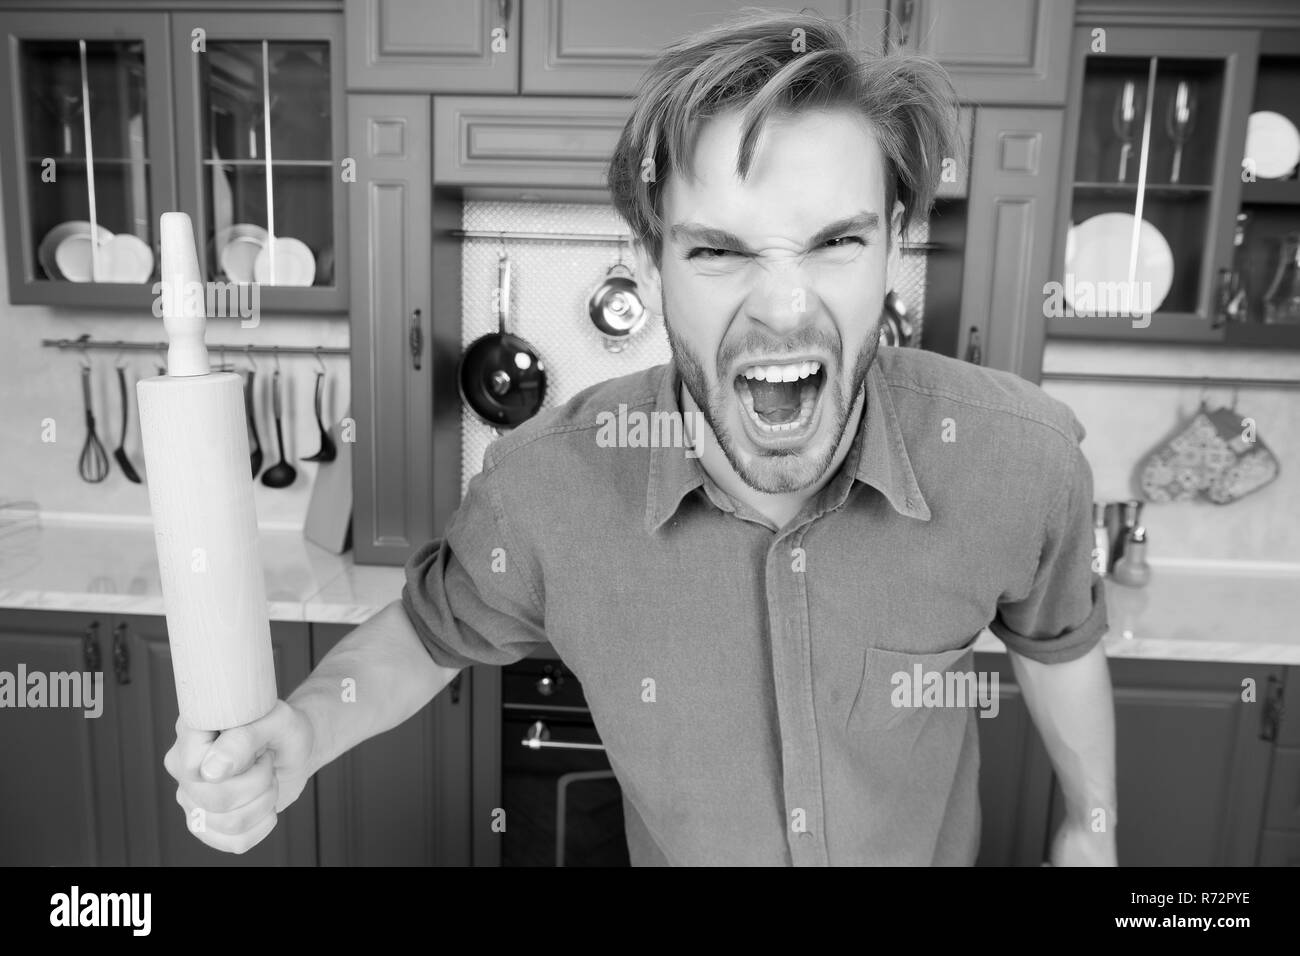 Man with angry face shout with rolling pin in kitchen. Cook, bake, home food concept - Stock Image